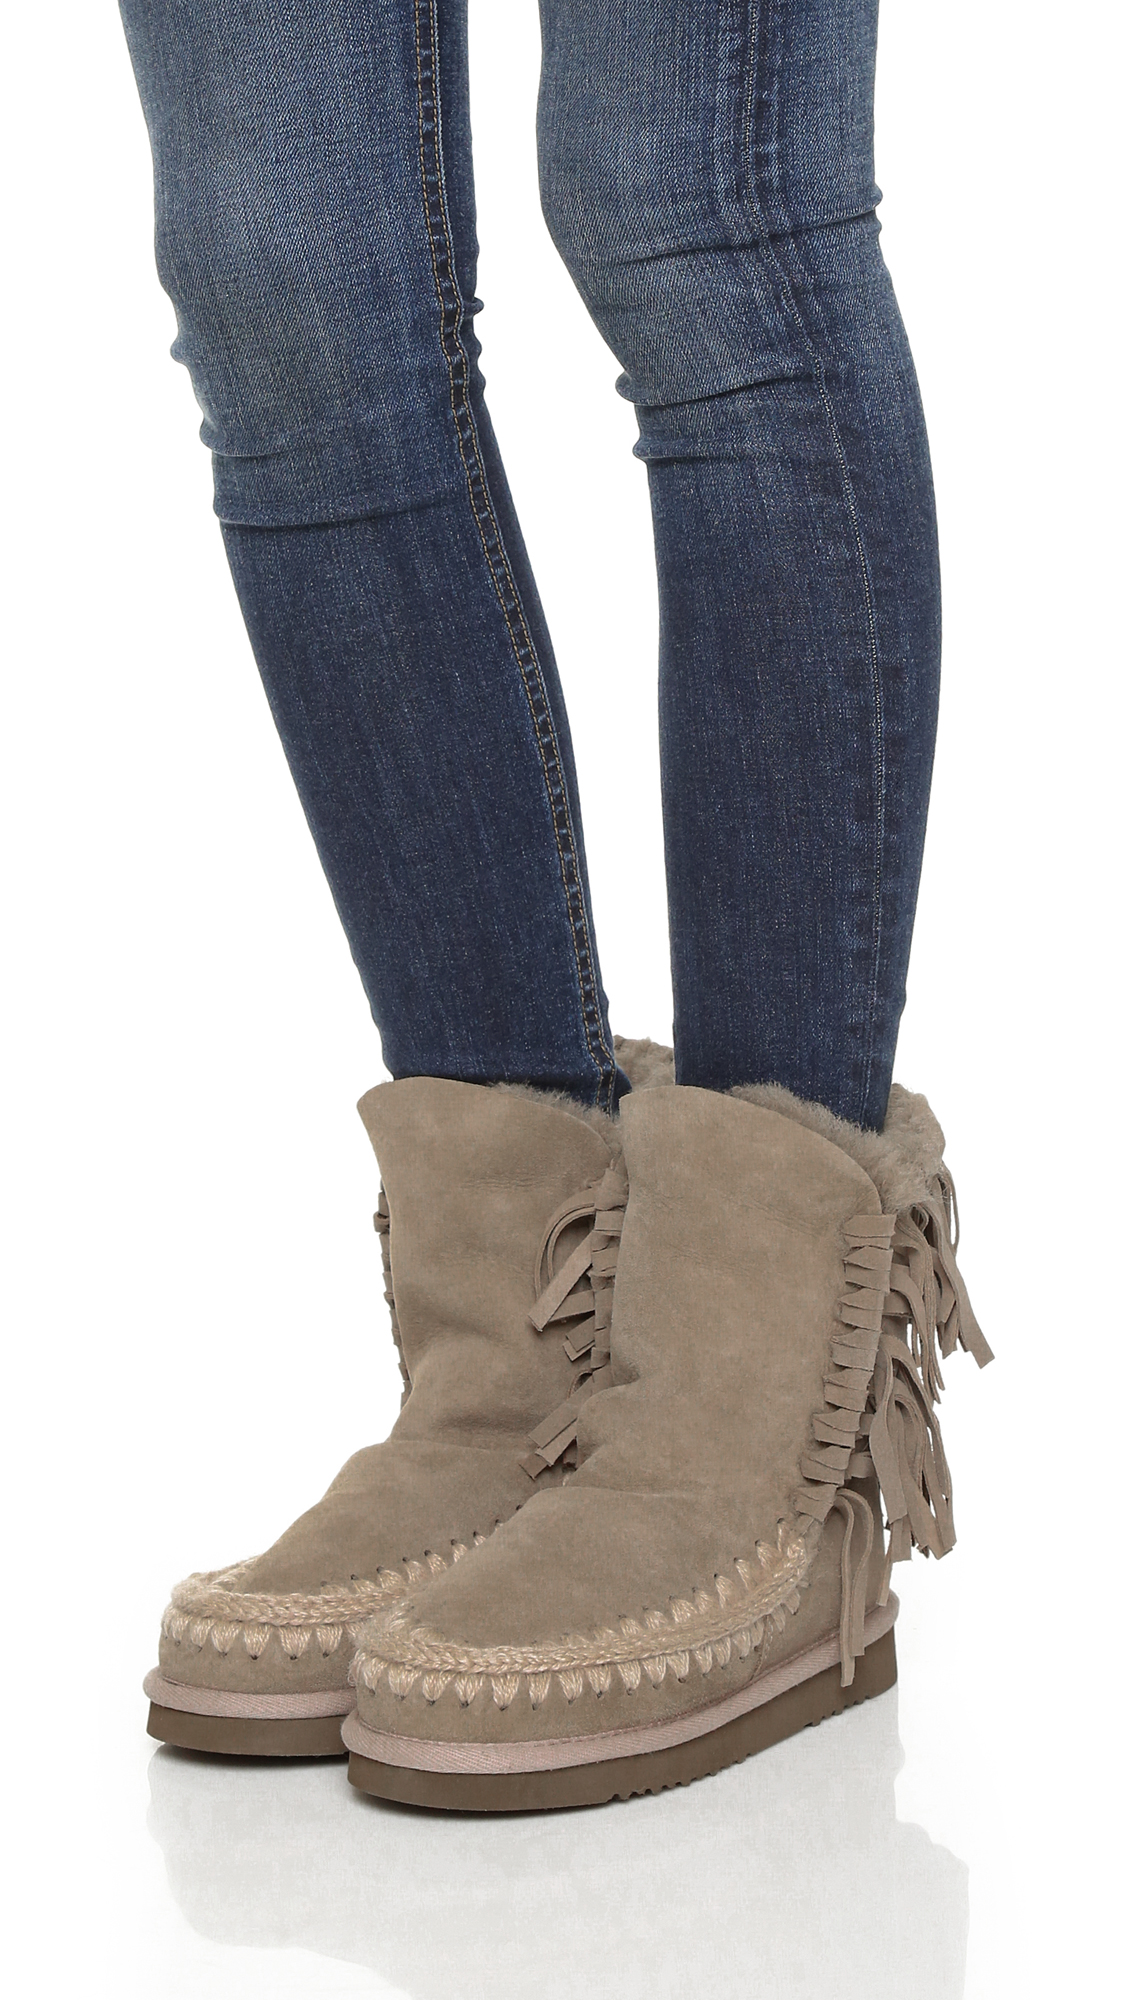 Mou fringed boots best prices online t46nr